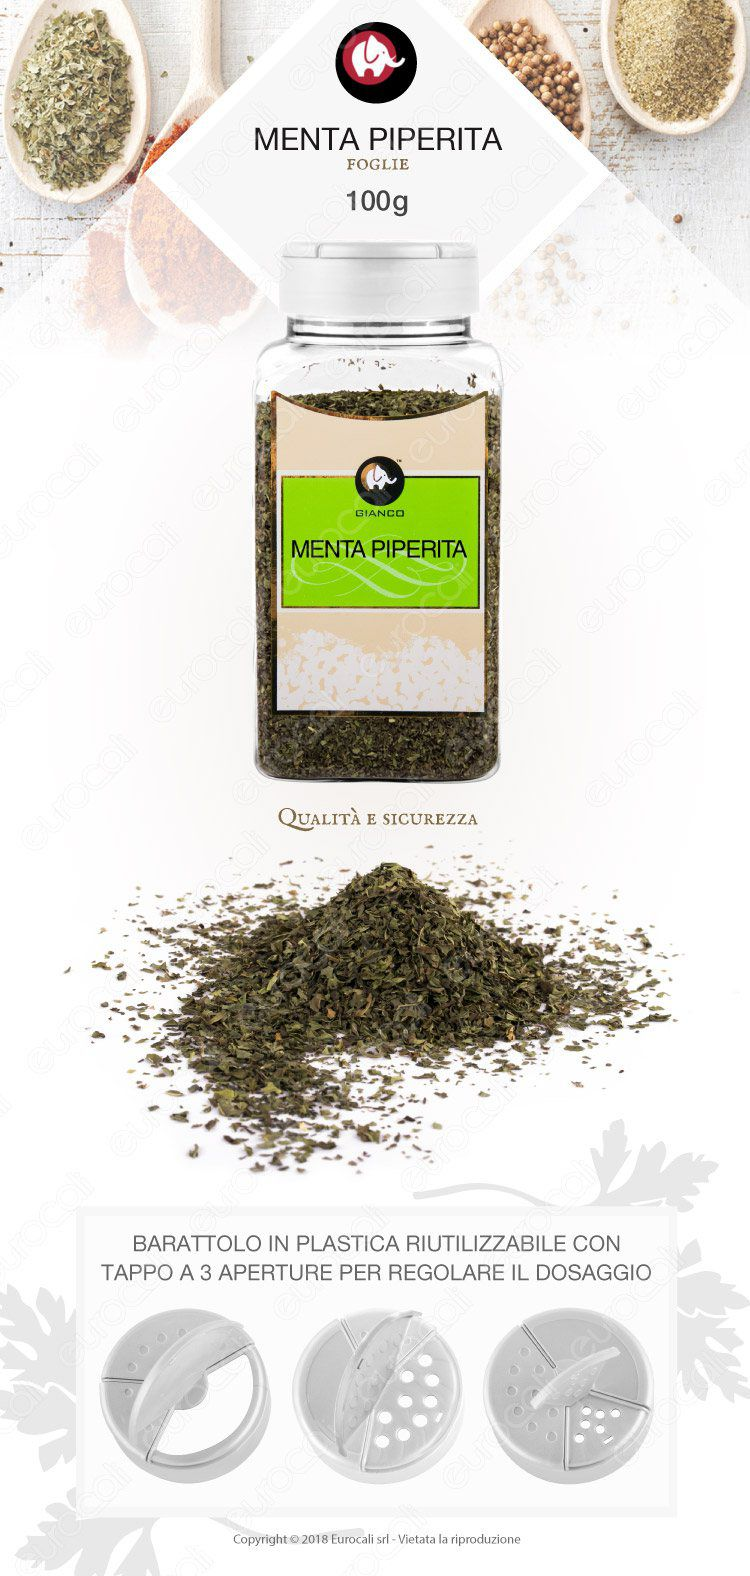 Gianco Menta Piperita Foglie